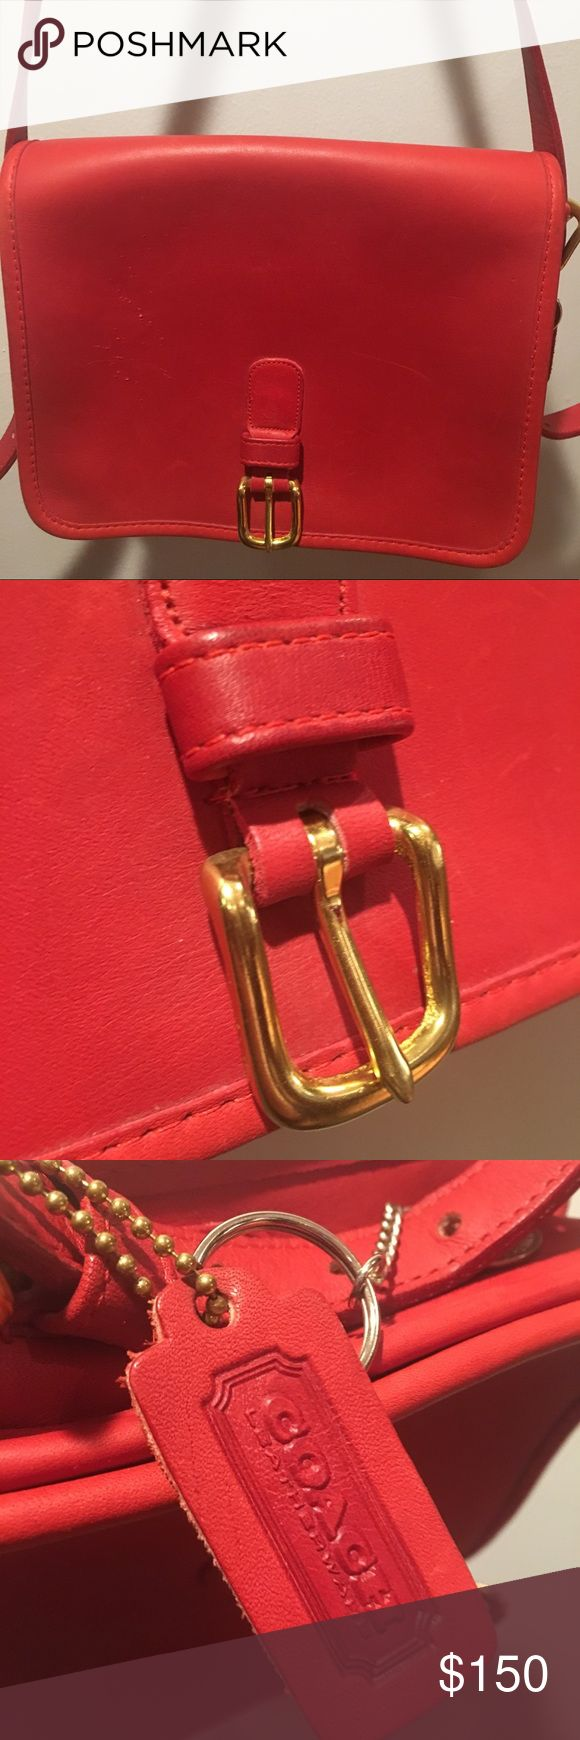 COACH — VINTAGE RED CROSSBODY BAG GENUINE LEATHER Beautiful vintage Coach genuine leather bag in a vibrant red with gold hardware. Zipper pocket inside makes all your belongings secure. Perfect bag for everyday and to dress up any holiday outfit. Slight damage reflected in price and can be seen in pictures. AMAZING DEAL. Coach Bags Crossbody Bags